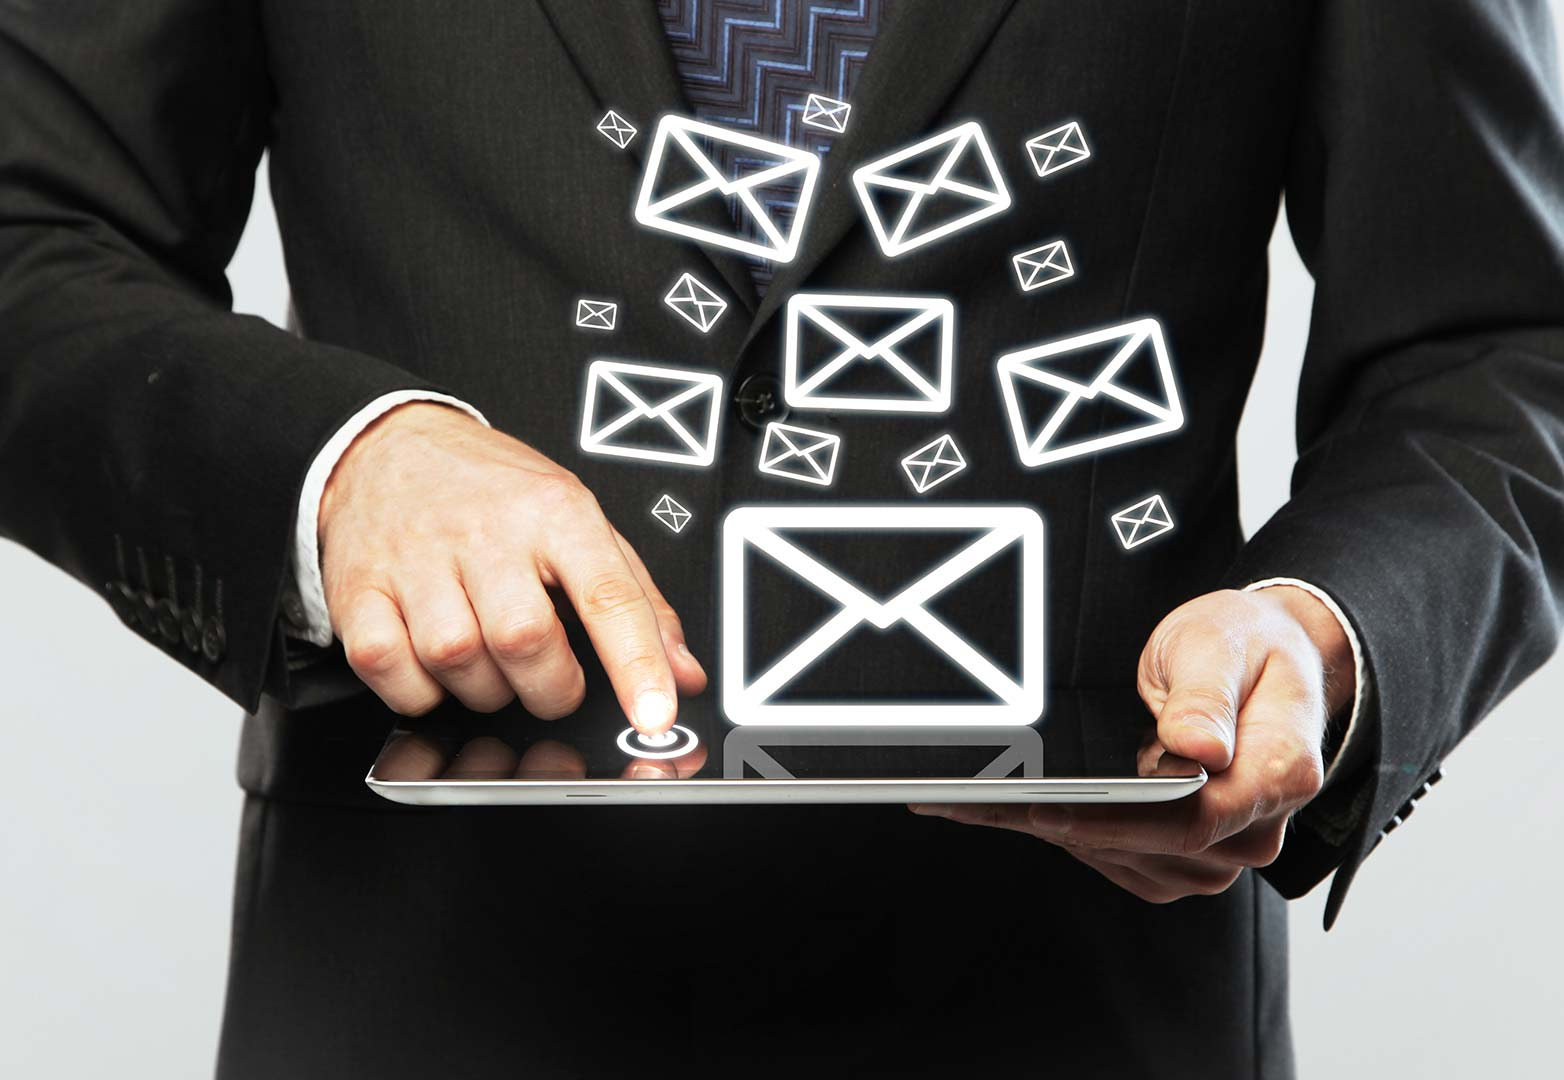 Si scrive e-mail o email?